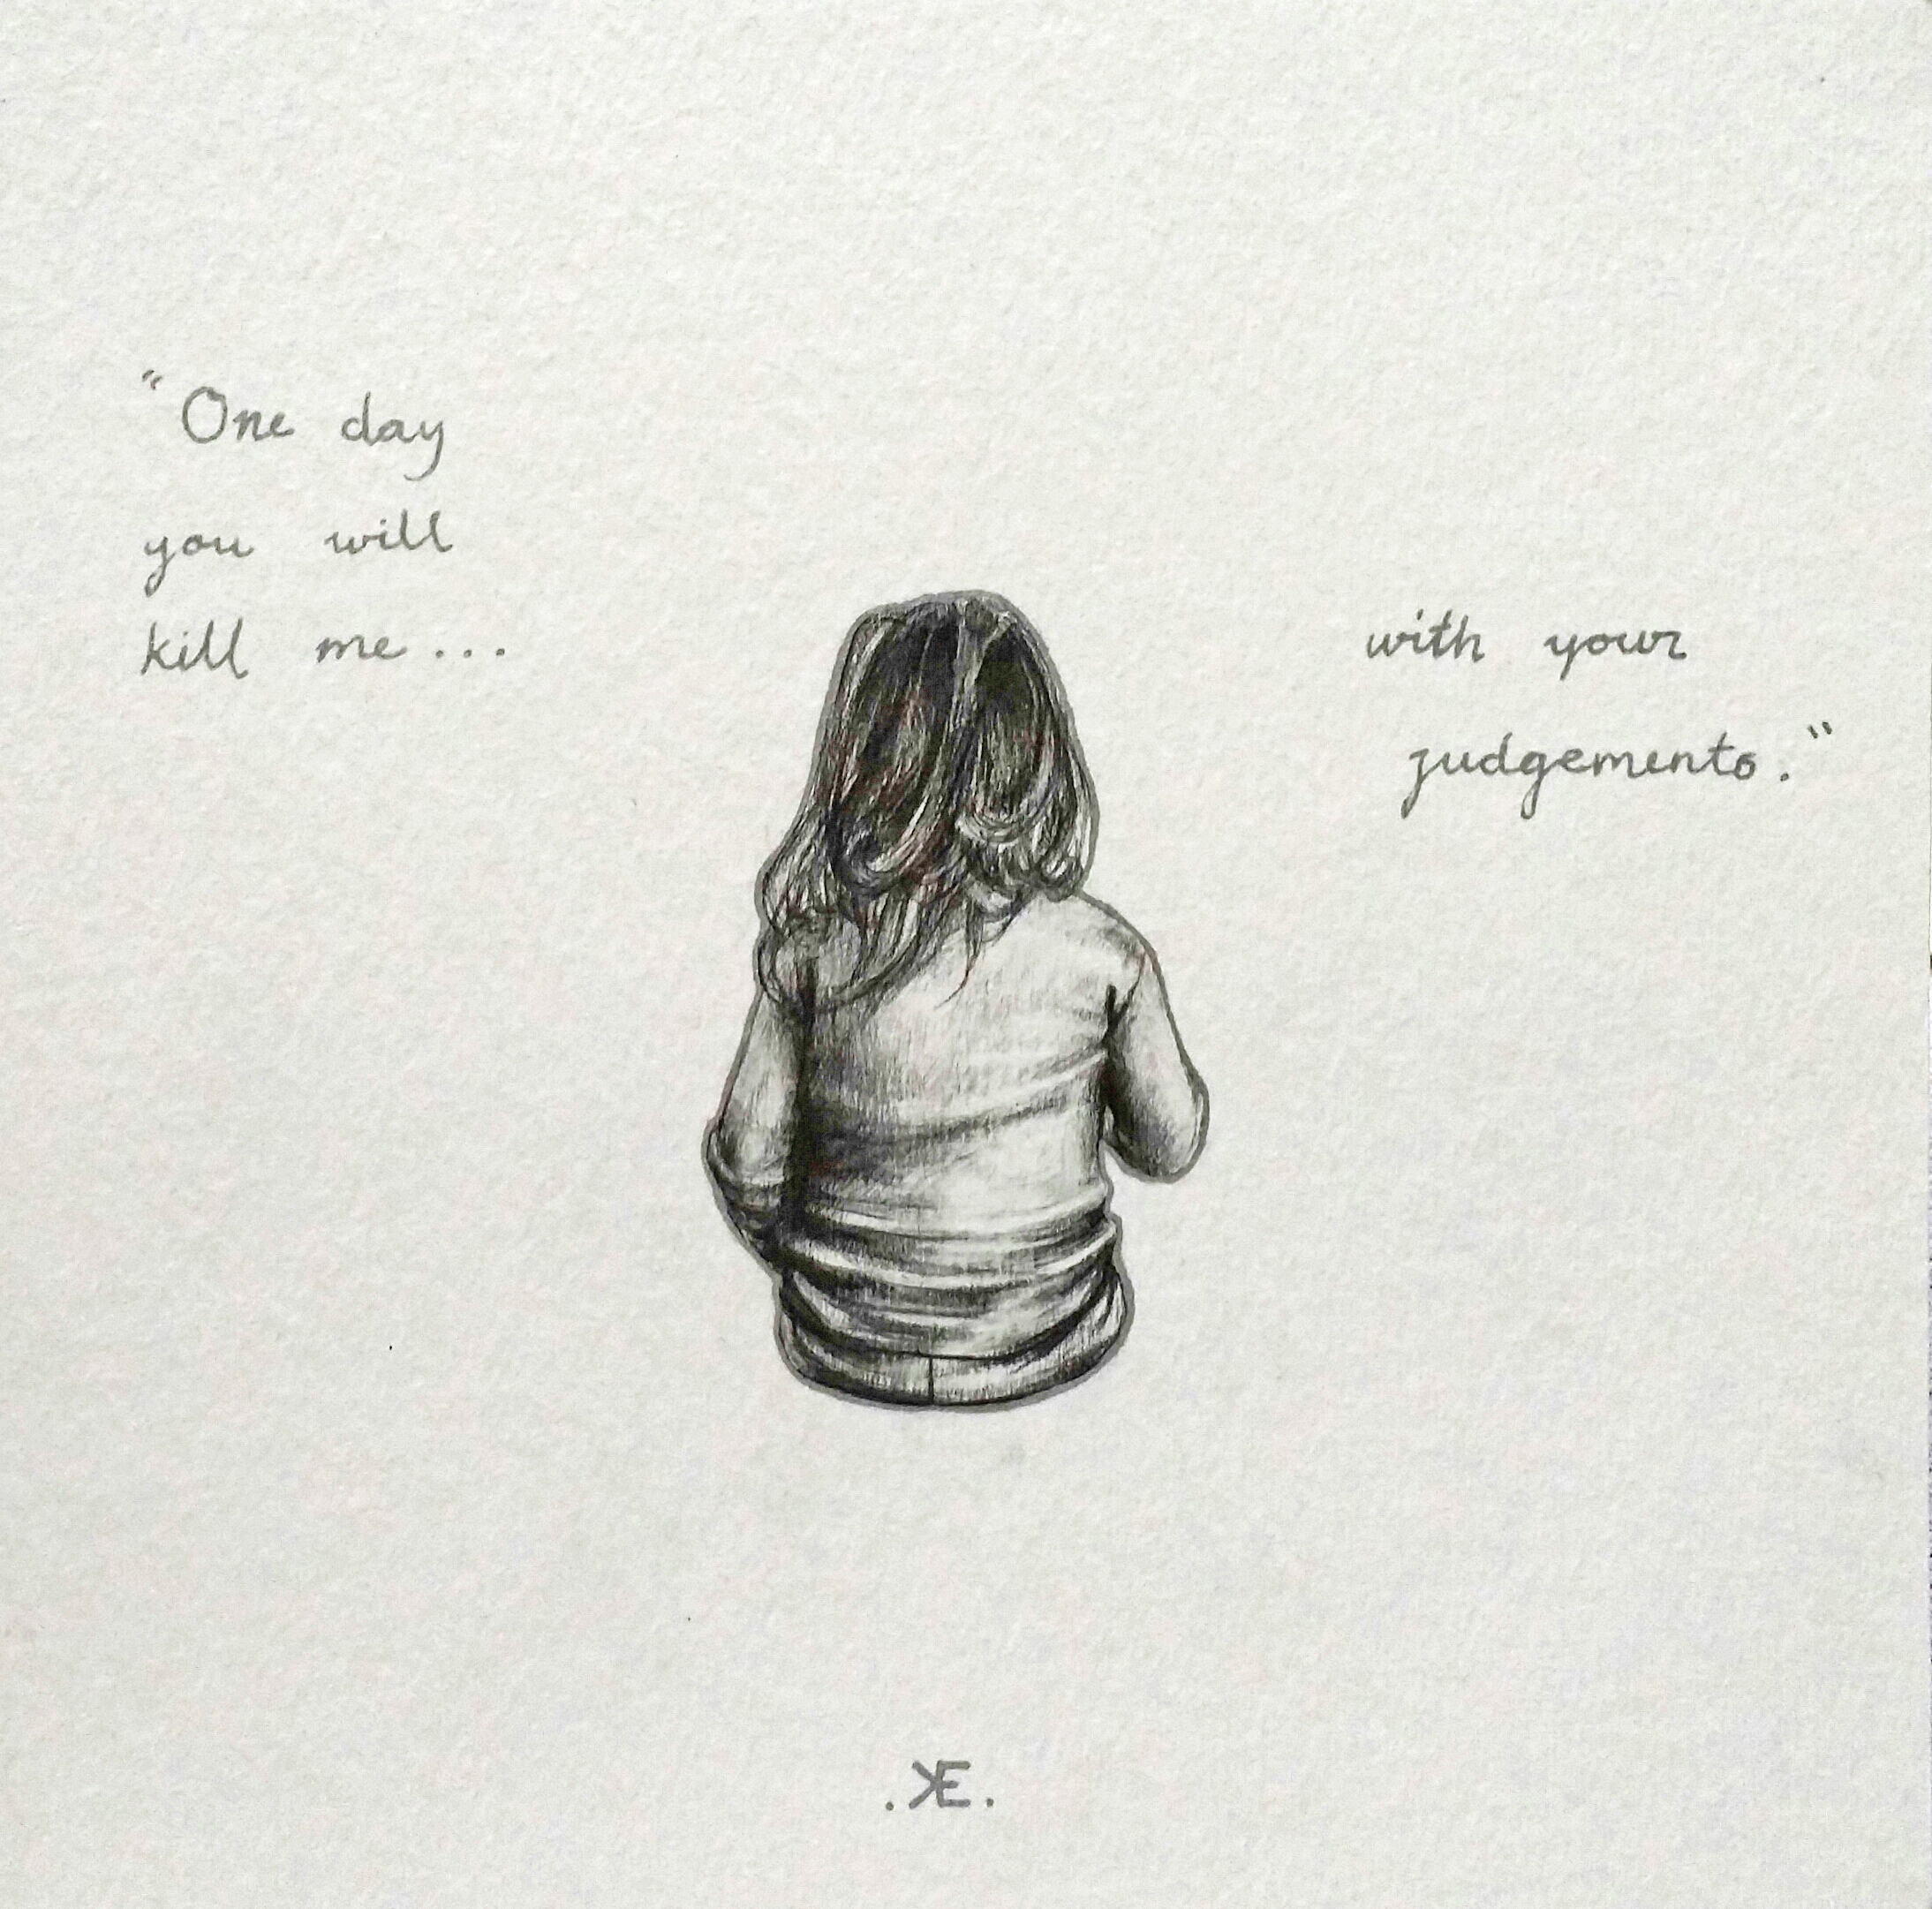 05.One Day You Kill Me With Your Judgements - Drawing on paper' 20x20cm, 2015